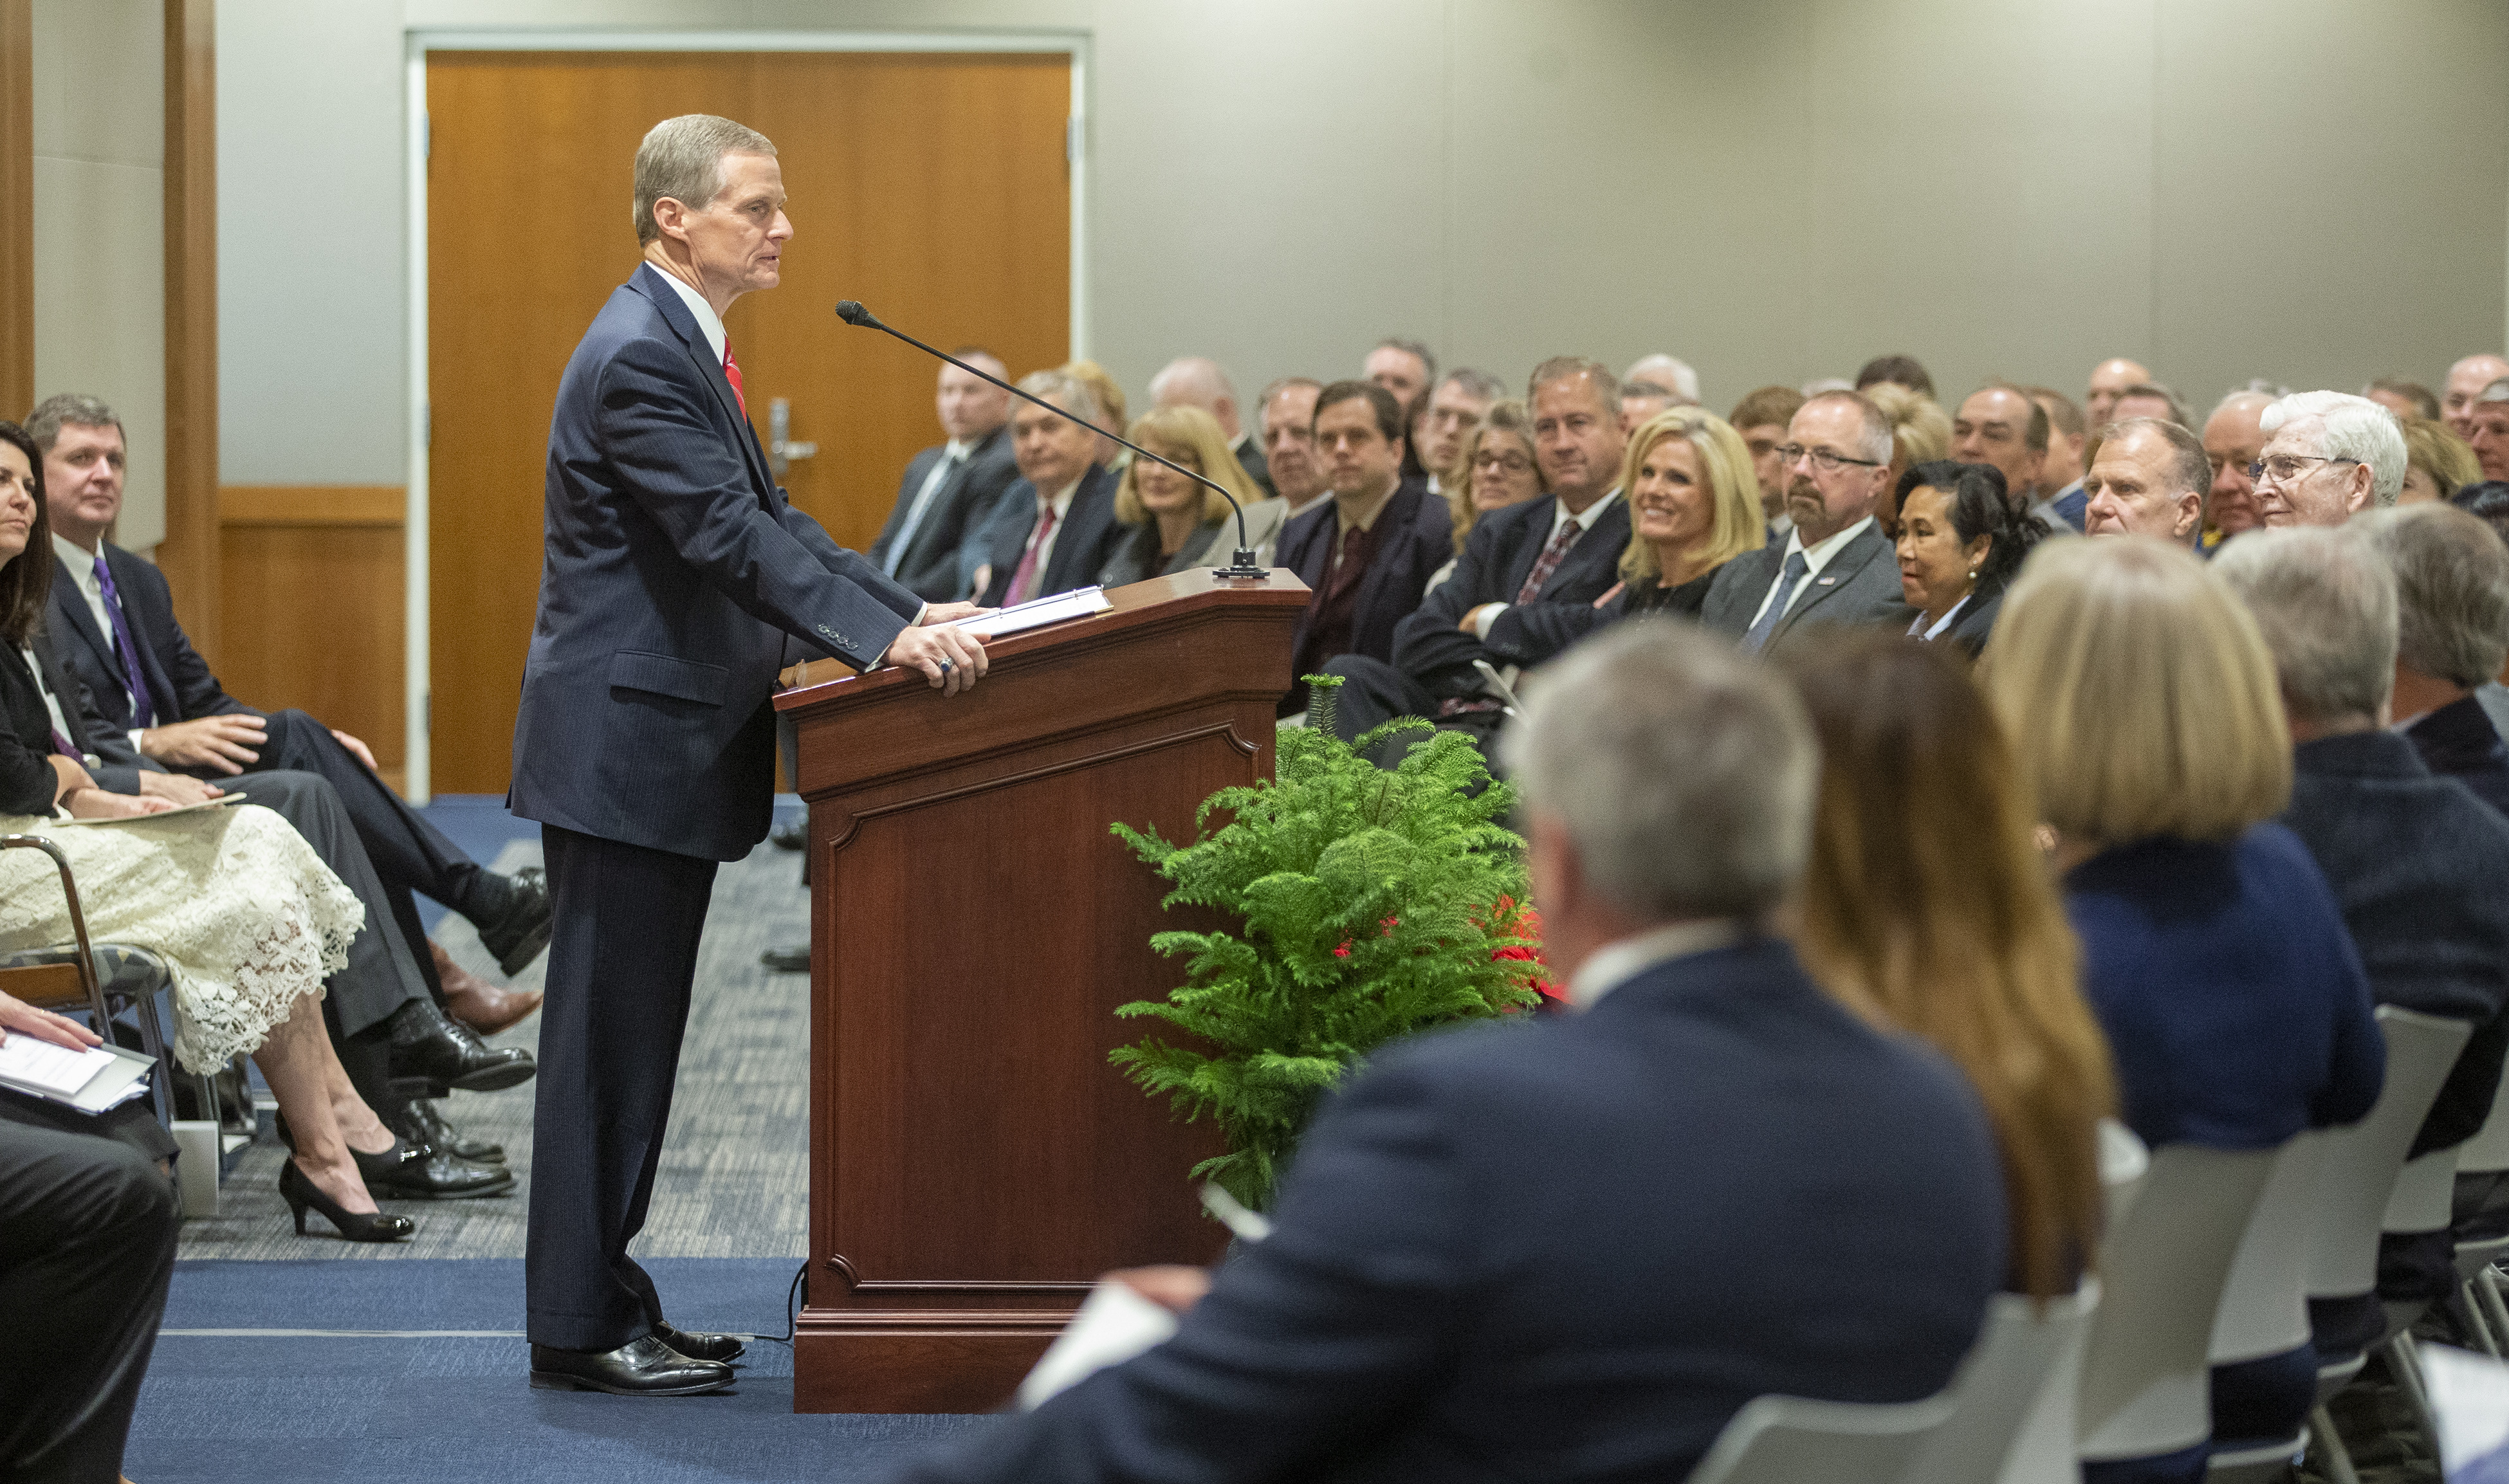 Elder David A. Bednar of the Quorum of the Twelve Apostles talks to the audience prior to delivering the dedicatory prayer for the new Engineering Building at BYU in Provo on Tuesday, Dec. 4, 2018.